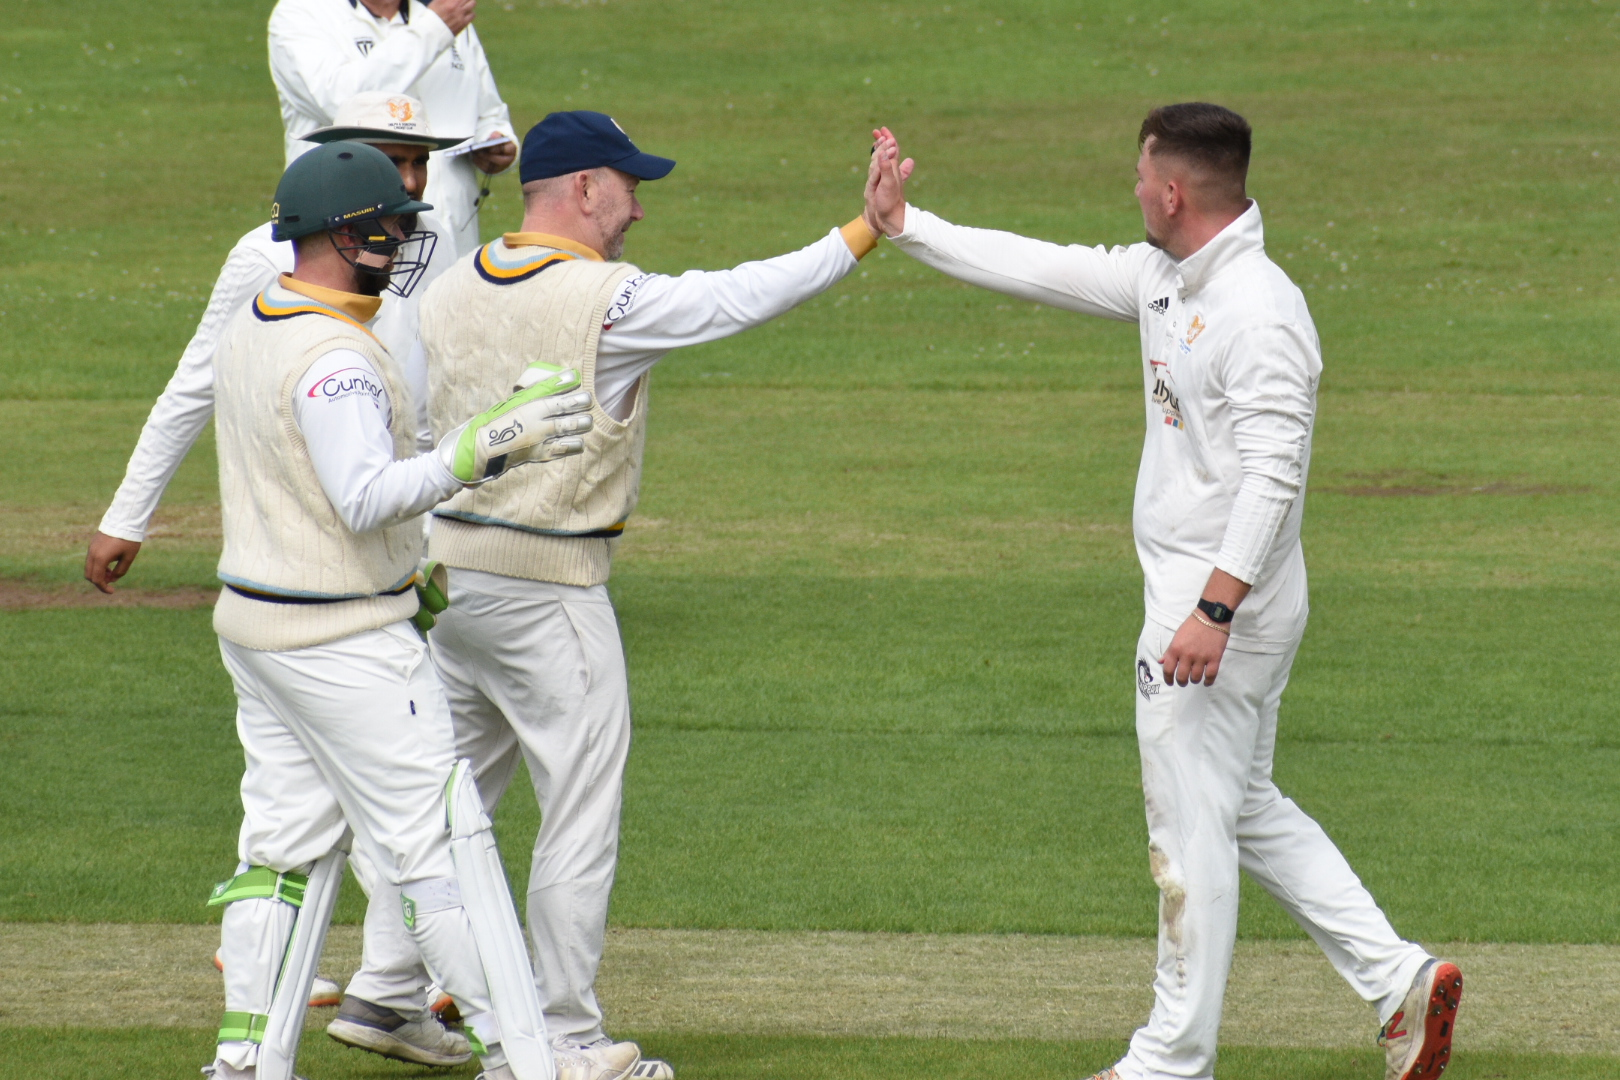 Nerves Shredded In Shepley And Delph Stalemate - Premiership Day 19 Review